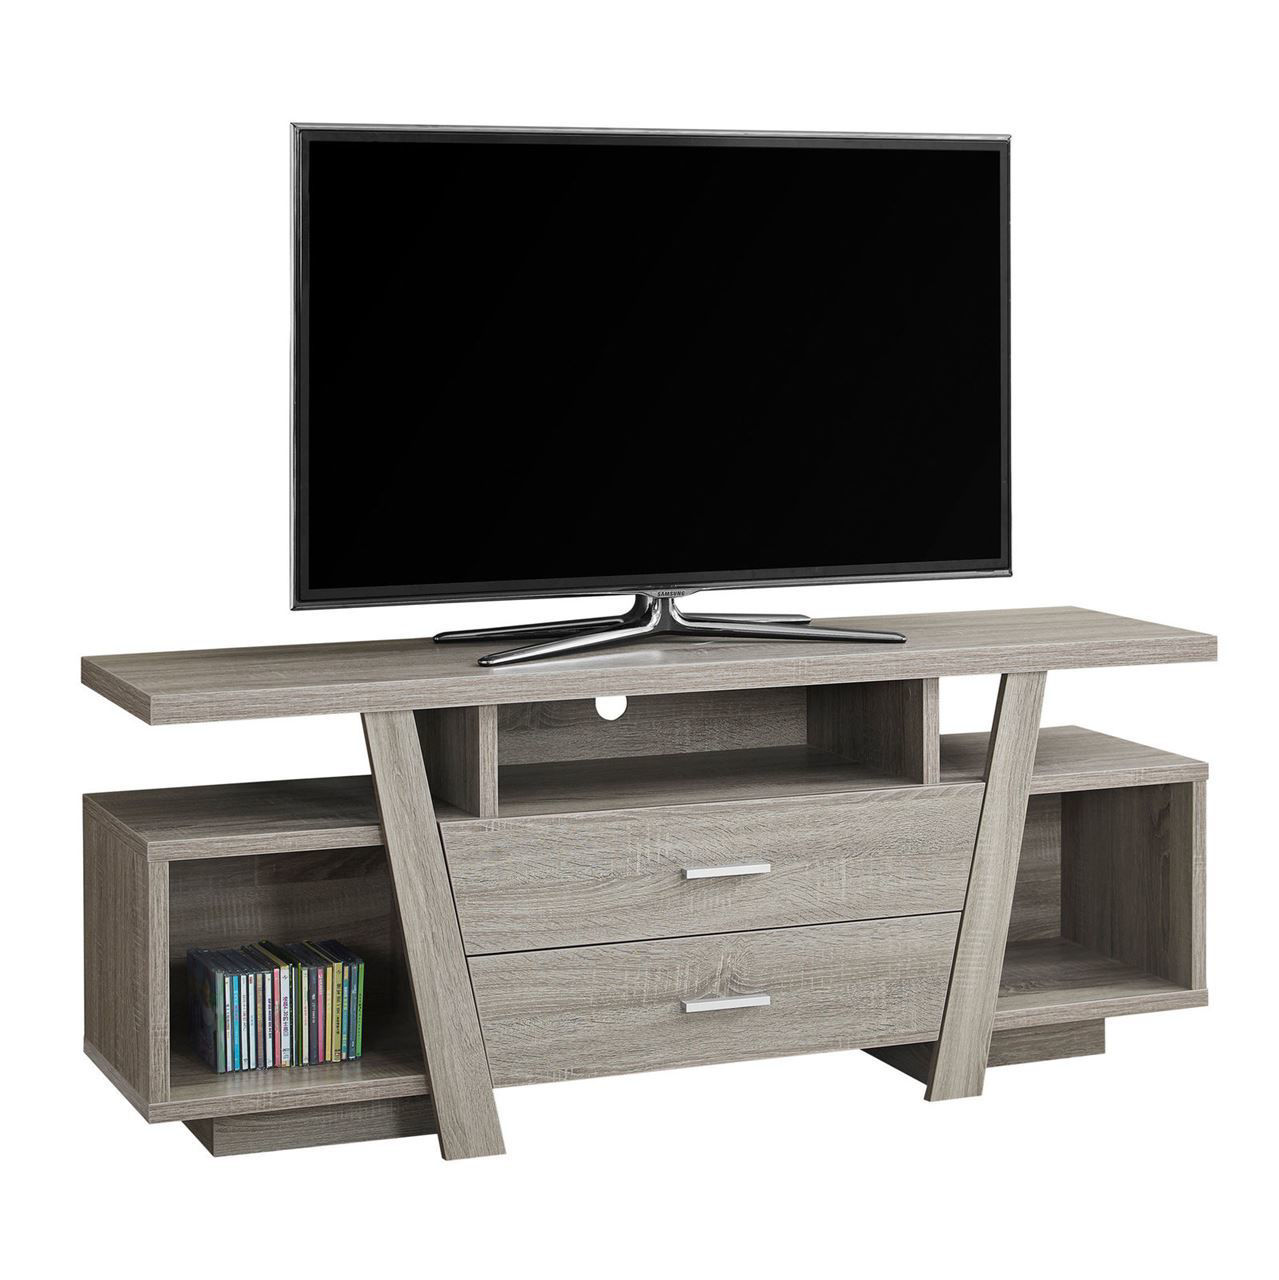 Picture of Living Room TV Stand with 2 Storage Drawers - 60""